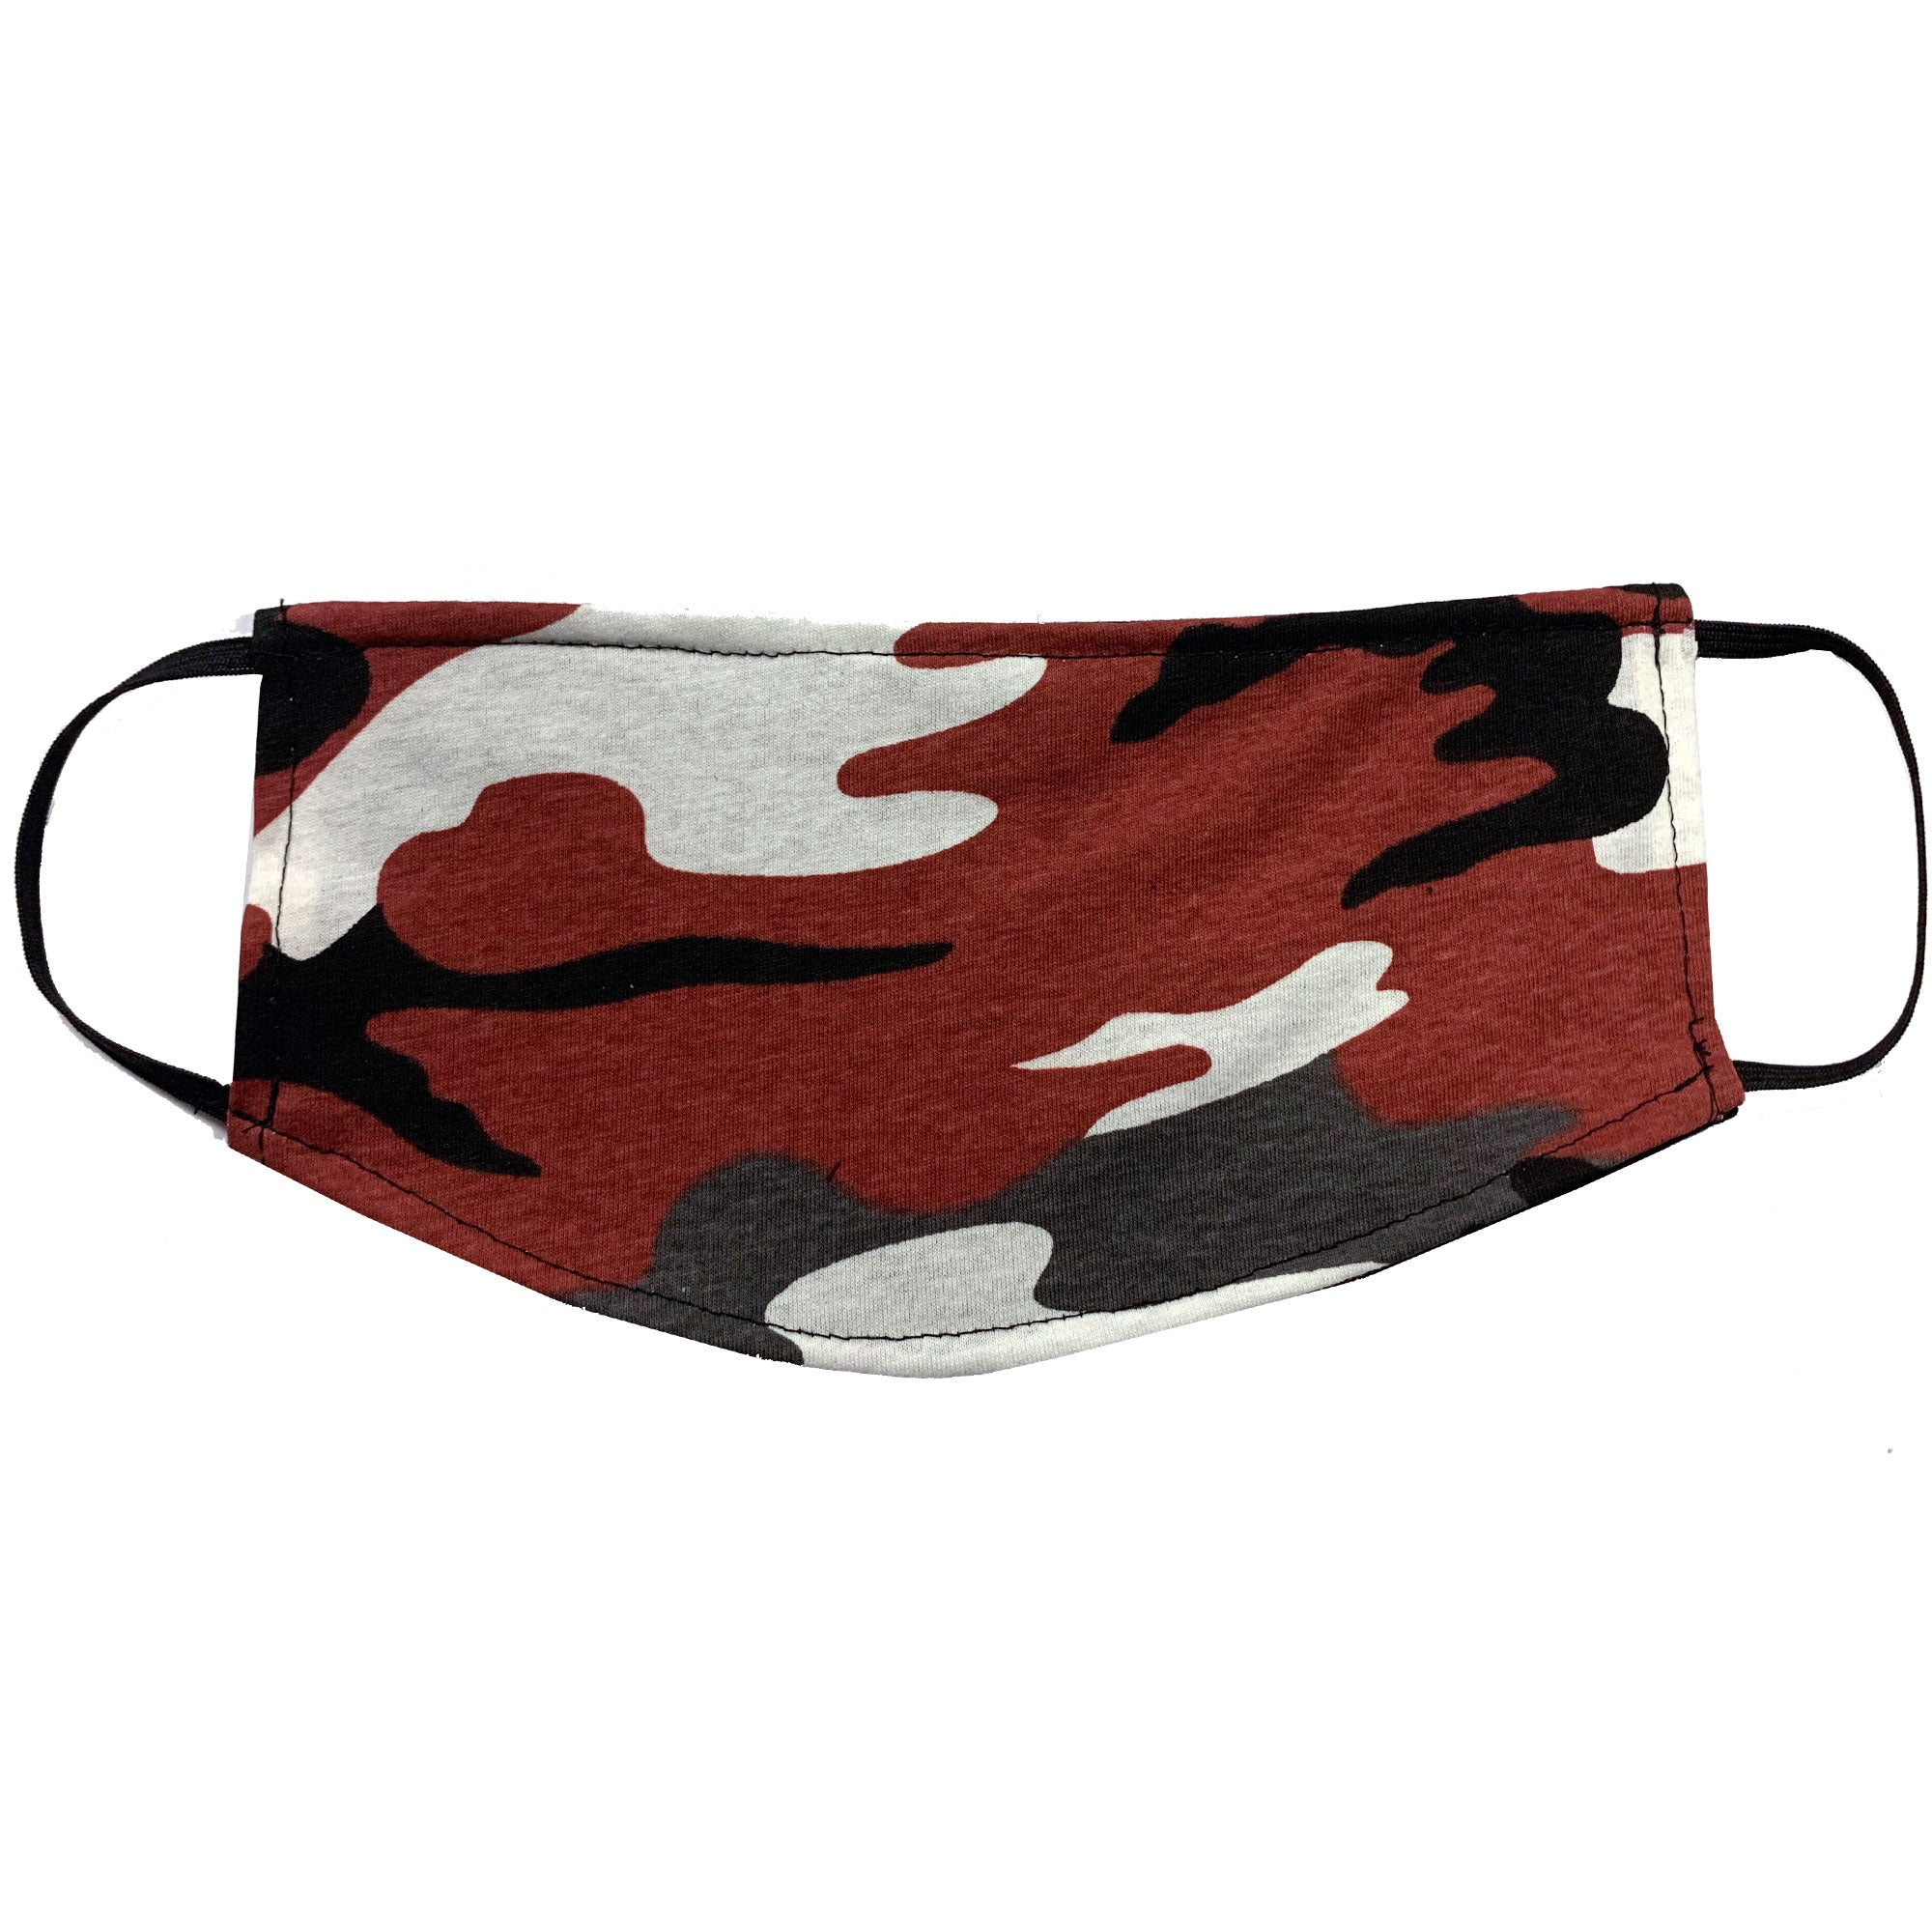 Adult Face Mask - Red Camo Design